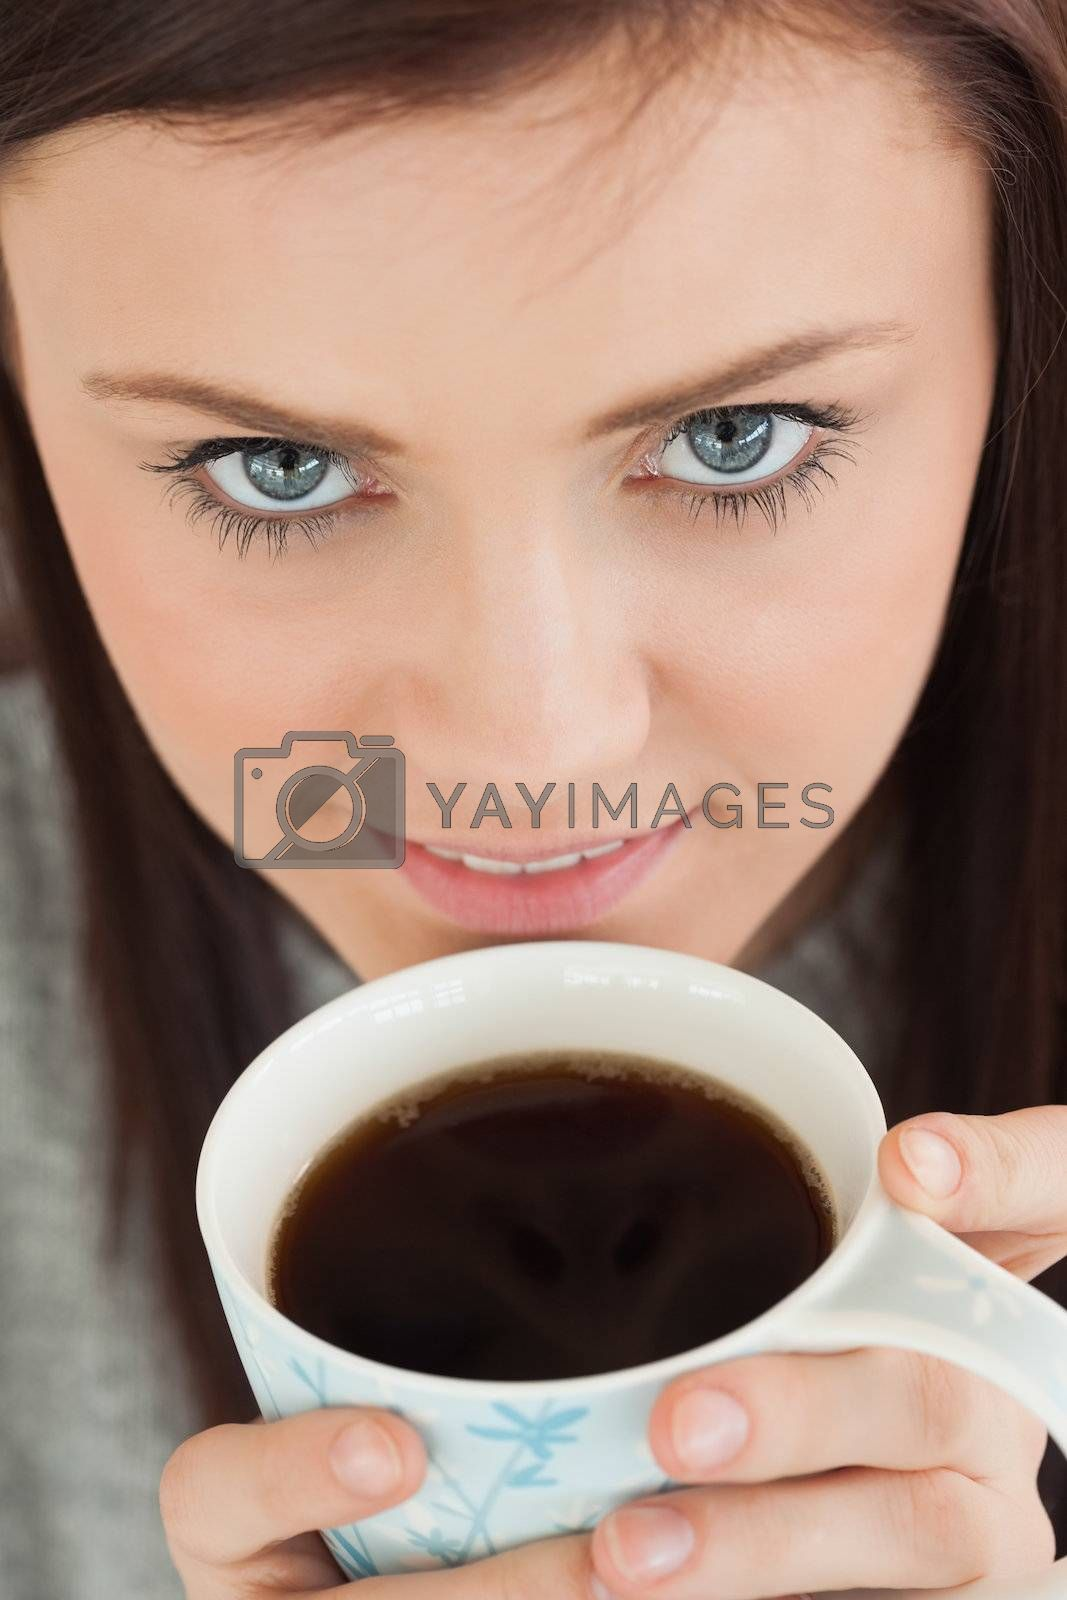 Smiling girl drinking a cup of coffee by Wavebreakmedia